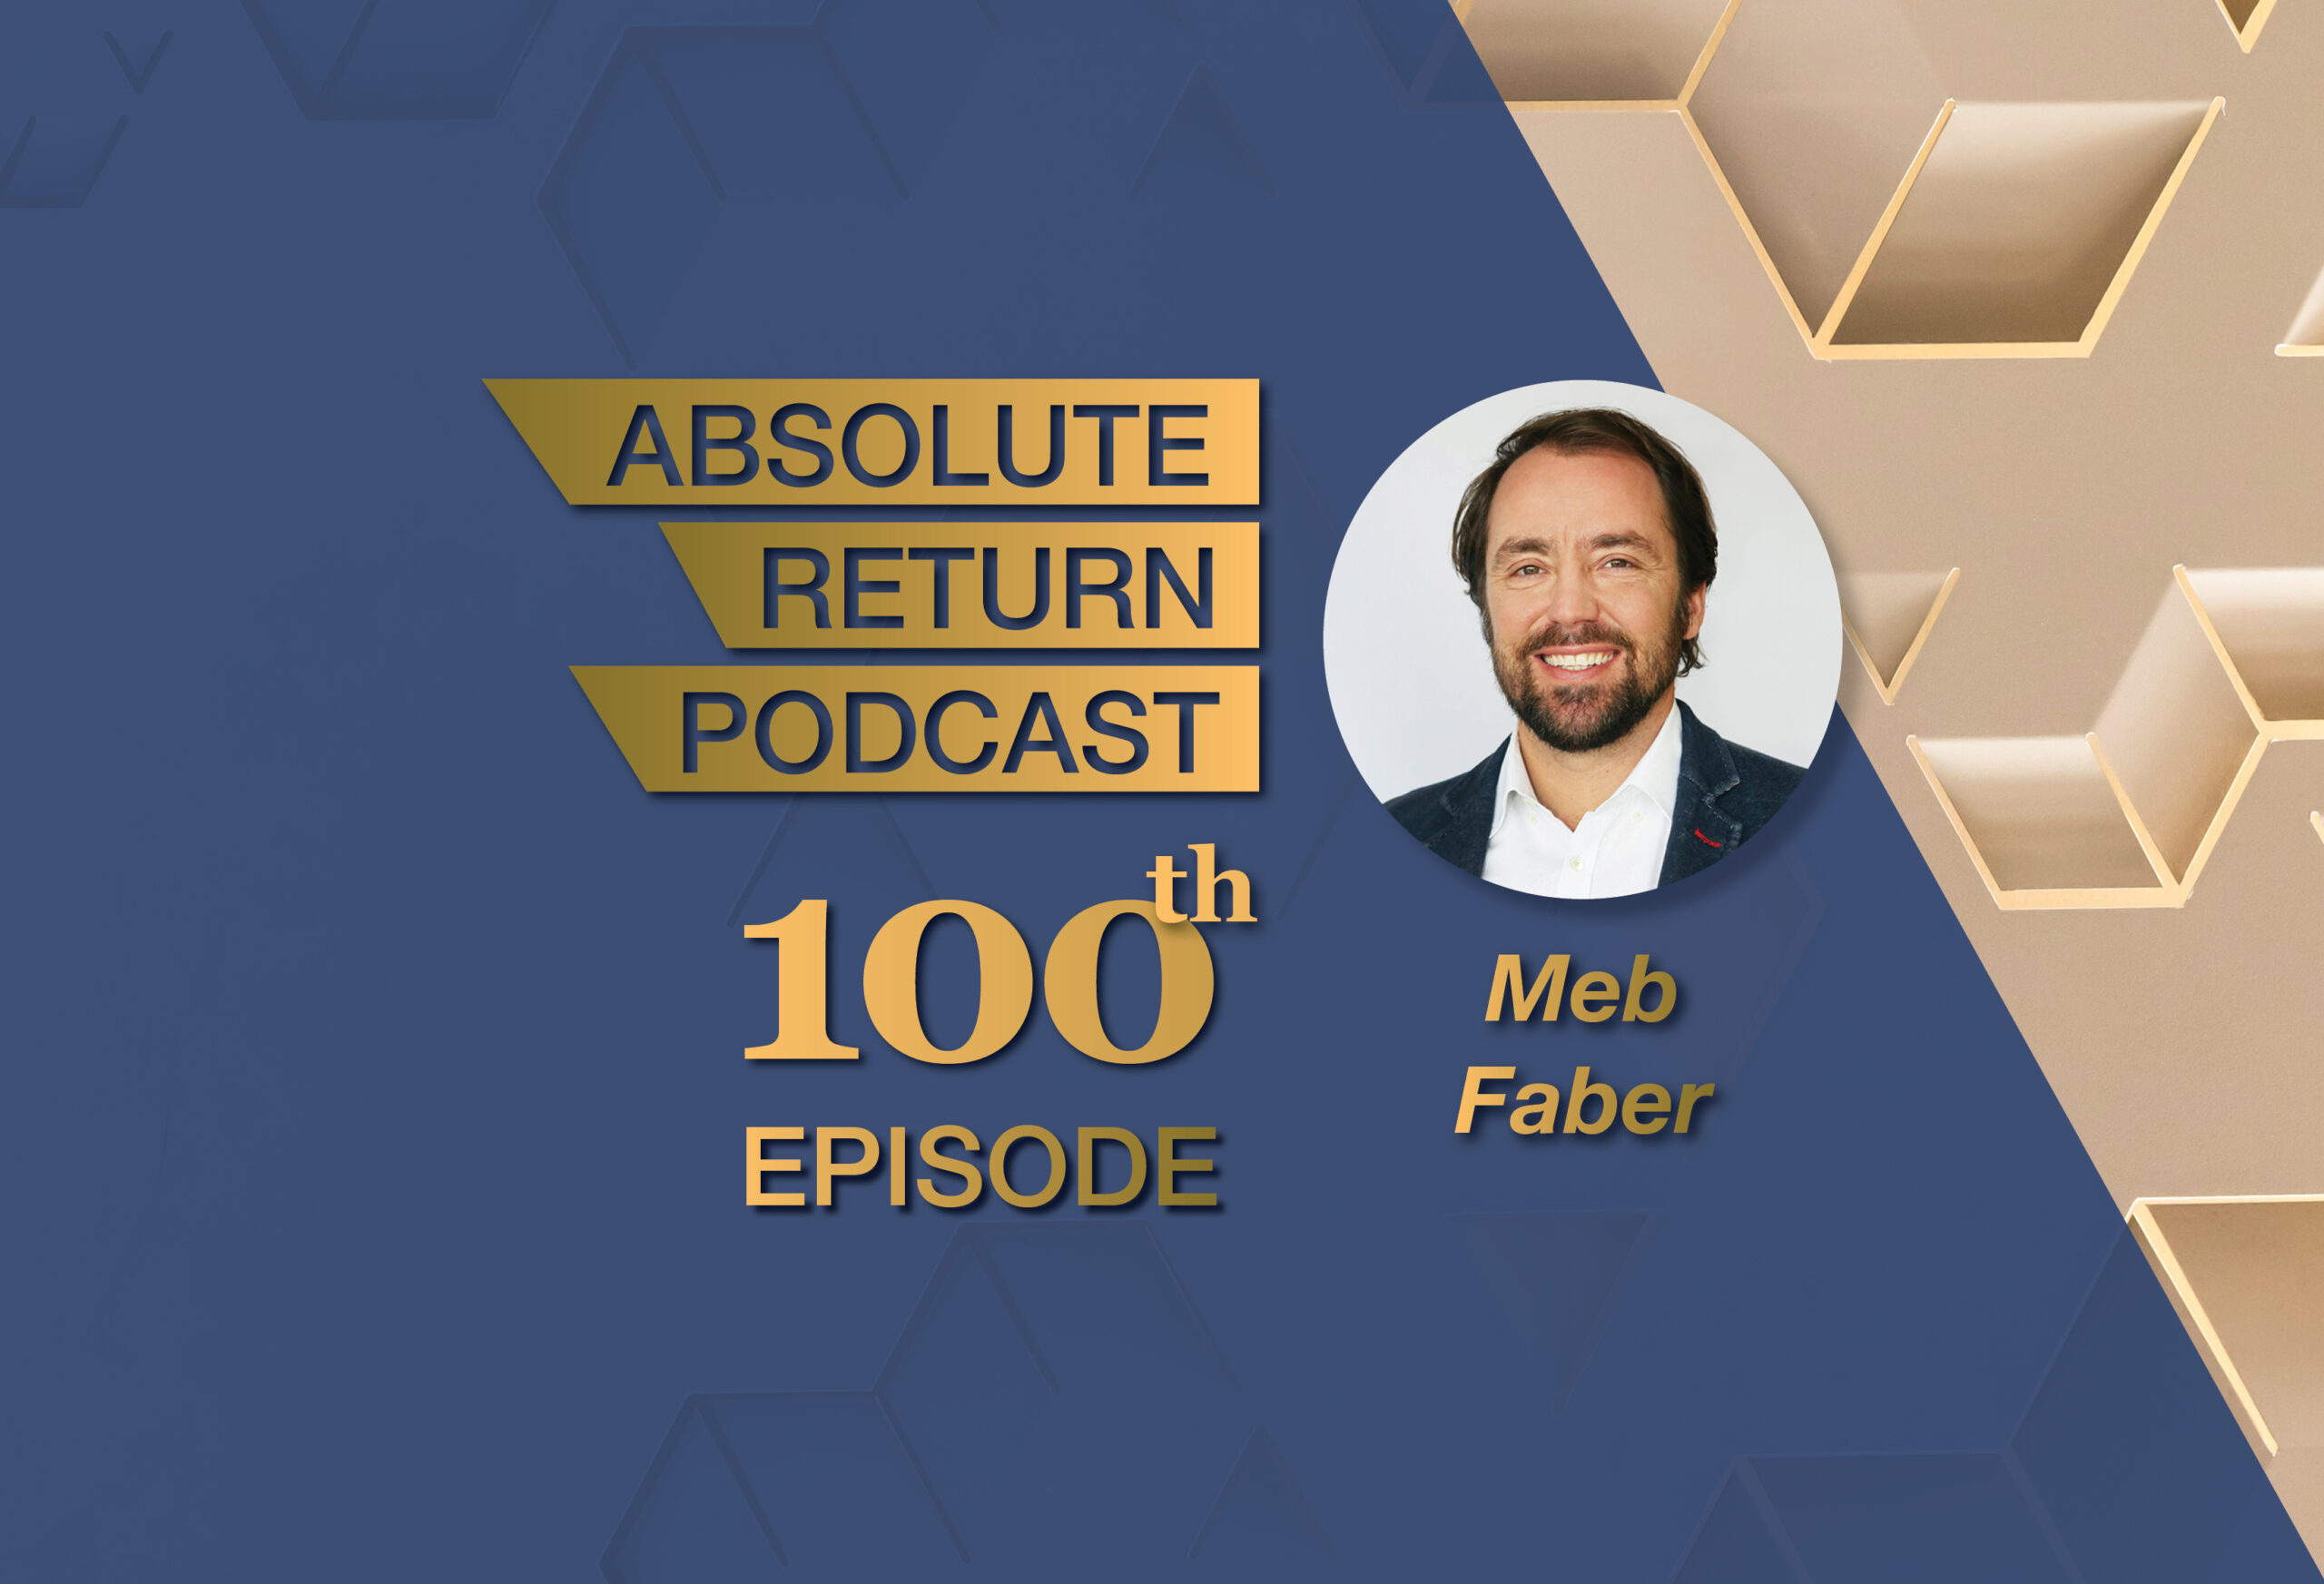 Absolute Return Podcast #100: Leadership Chat: Trend-following with Meb Faber